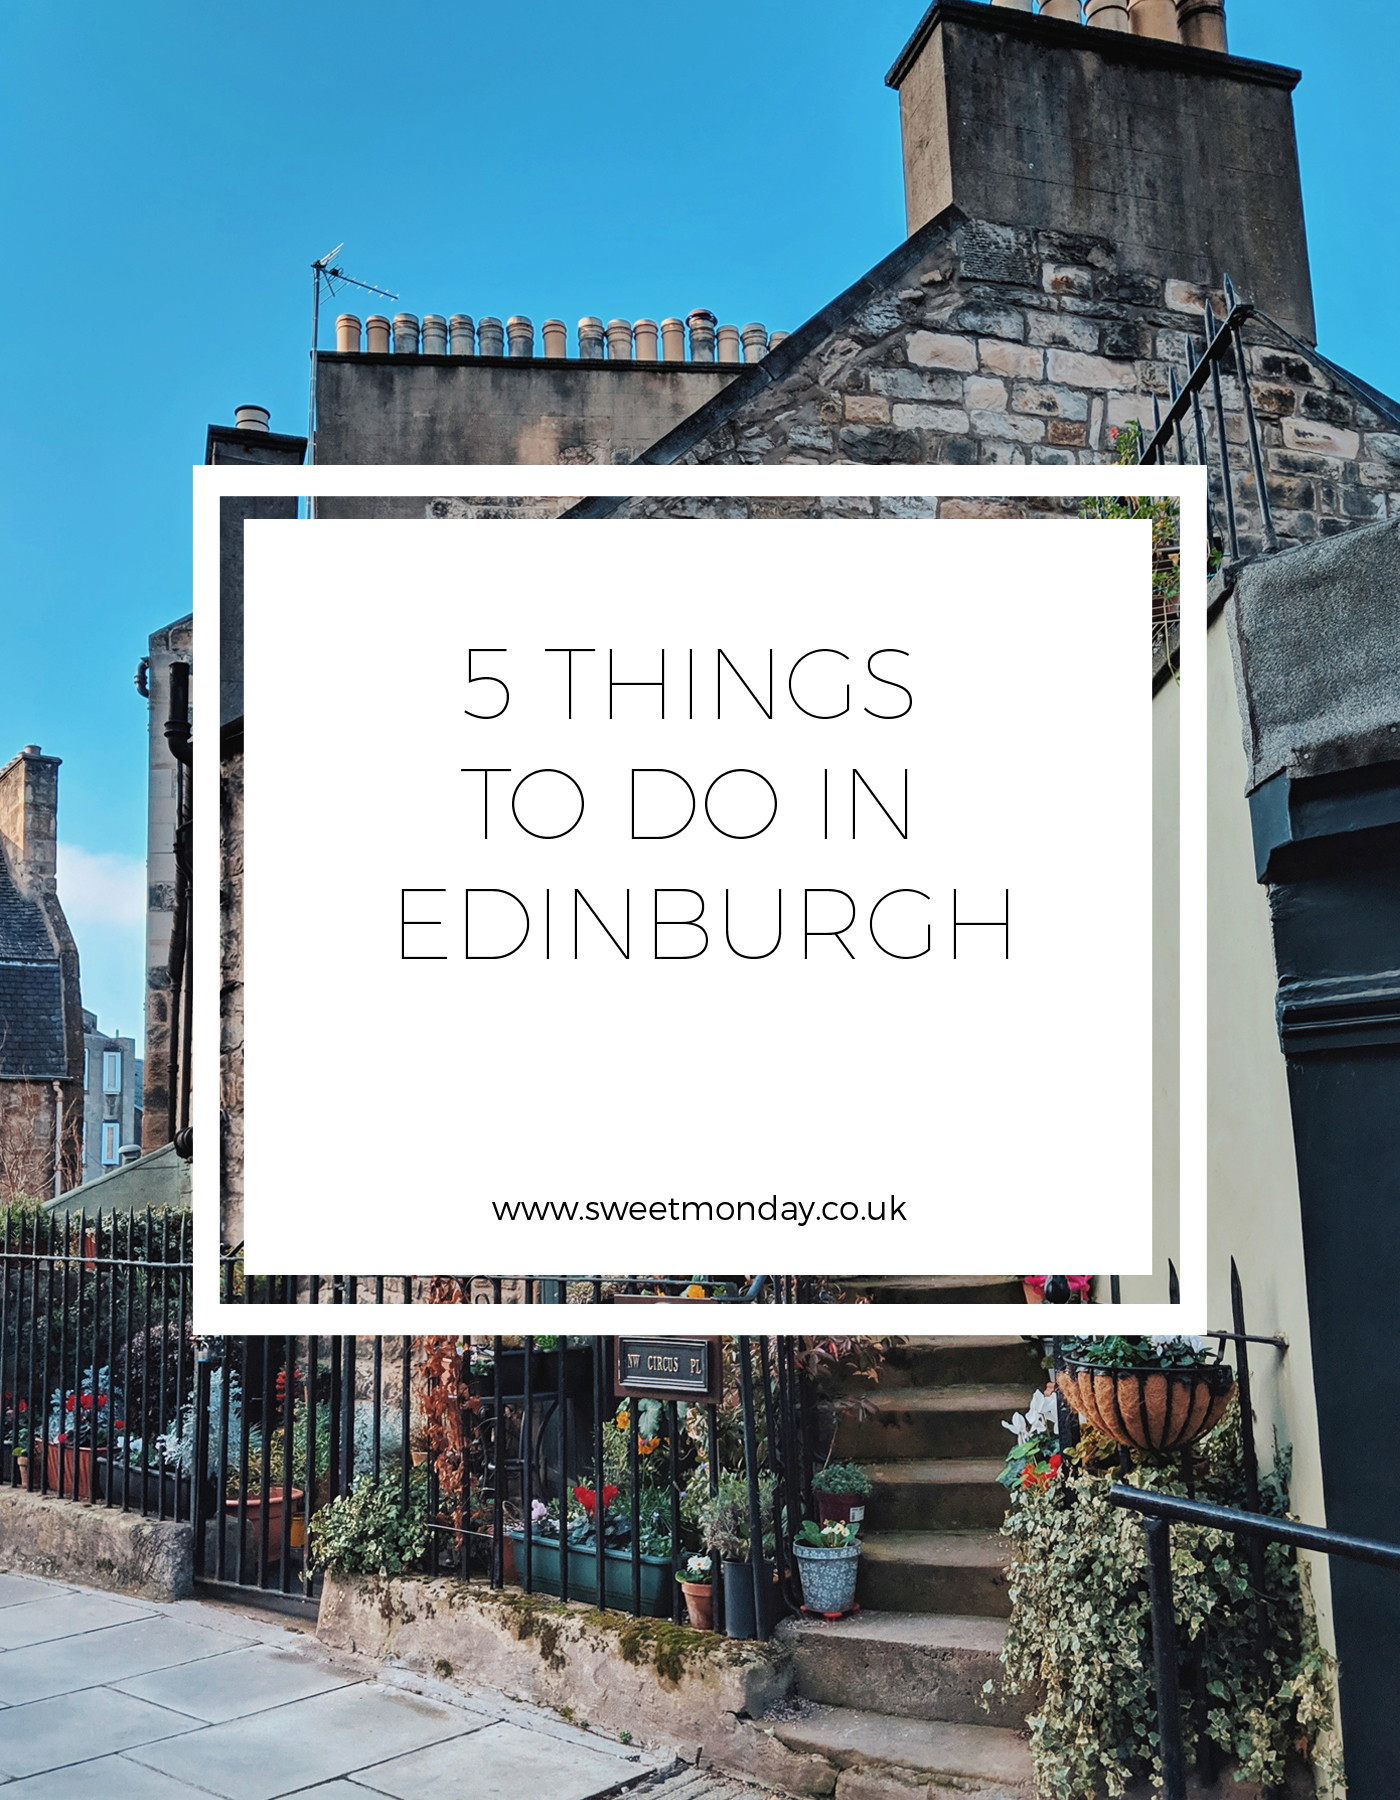 5 Things to do in Edinburgh